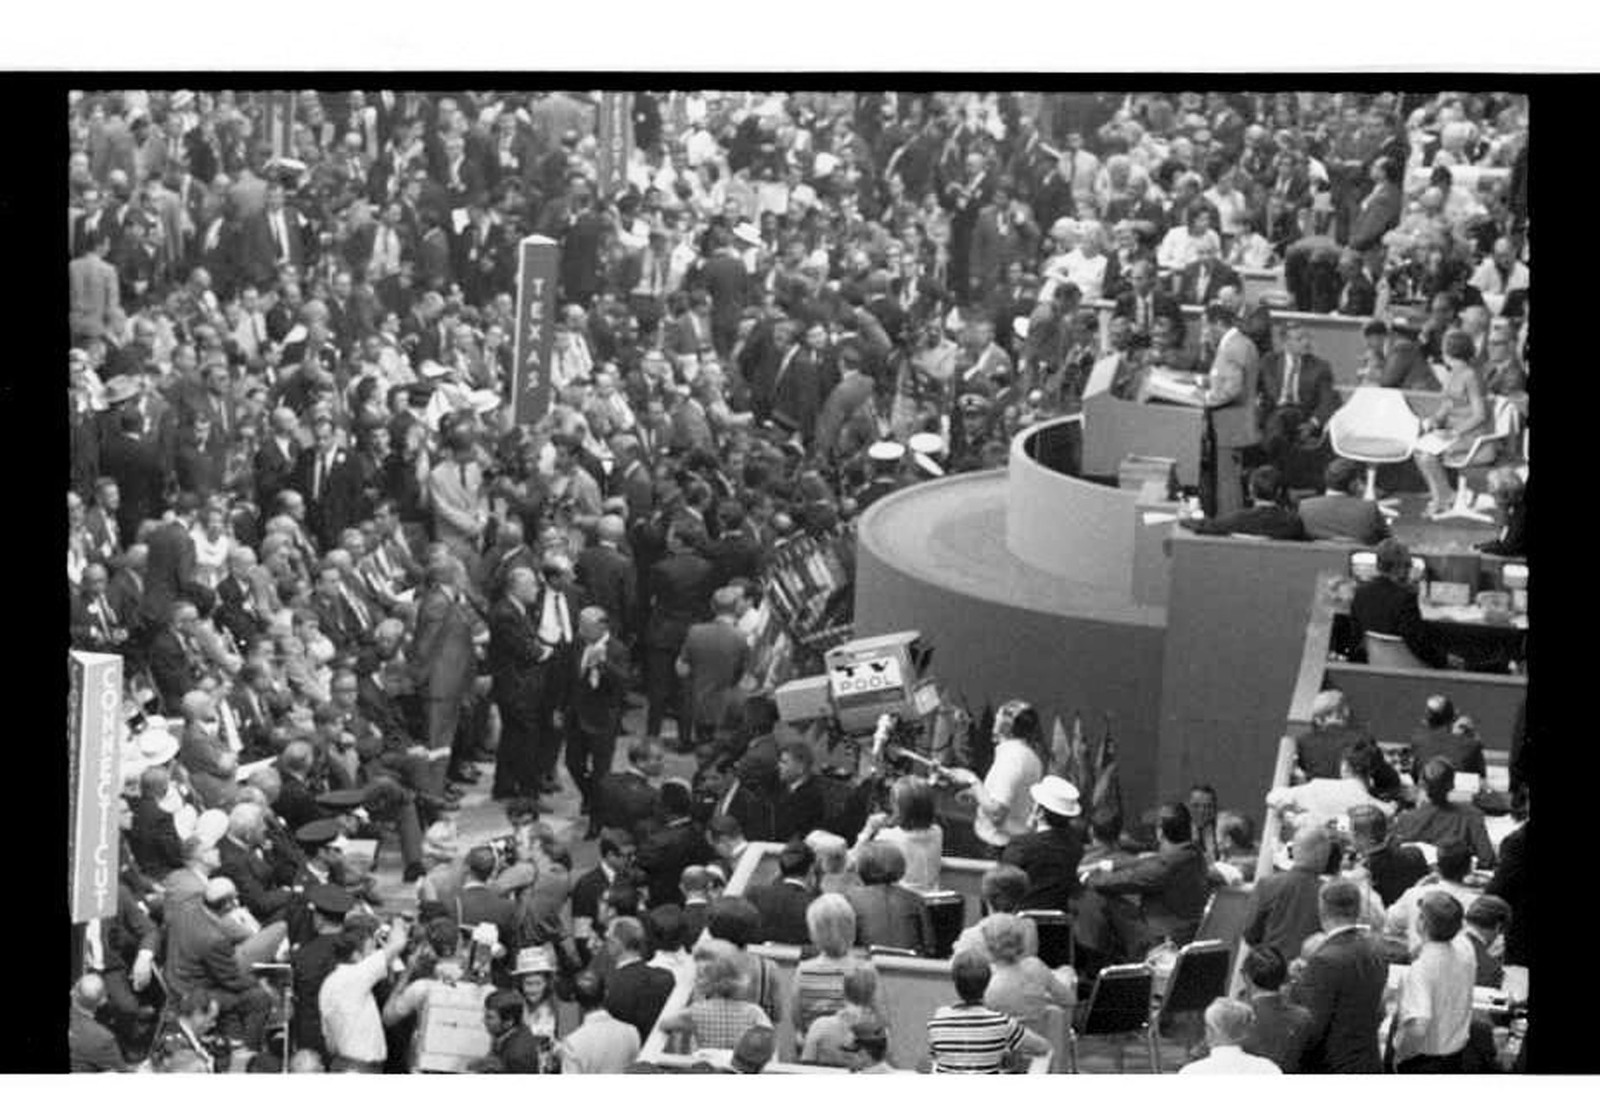 Delegates And The Stage At 1968 Democratic National Convention